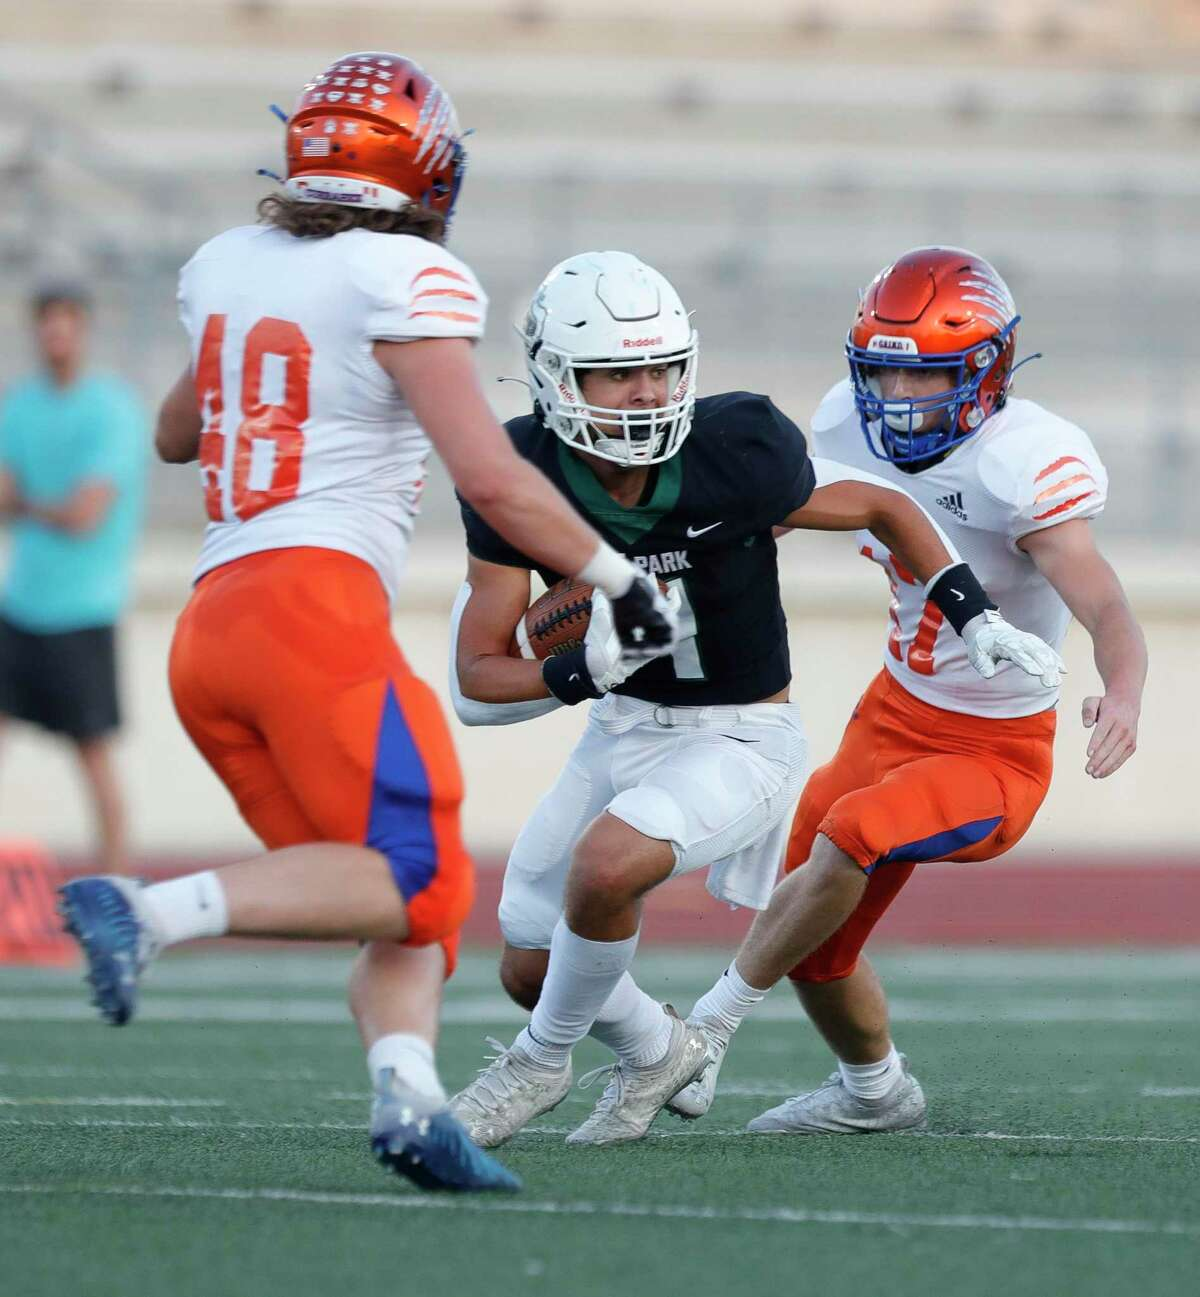 Kingwood Park wide receiver Pierce Richards (4) turns after making a catch between Grand Oaks linebacker Noah Langridge (48) and defensive back Logan Telfer (17) during the first quarter of a non-district high school football game at Turner Stadium, Thursday, Sept. 9, 2021, in Humble.